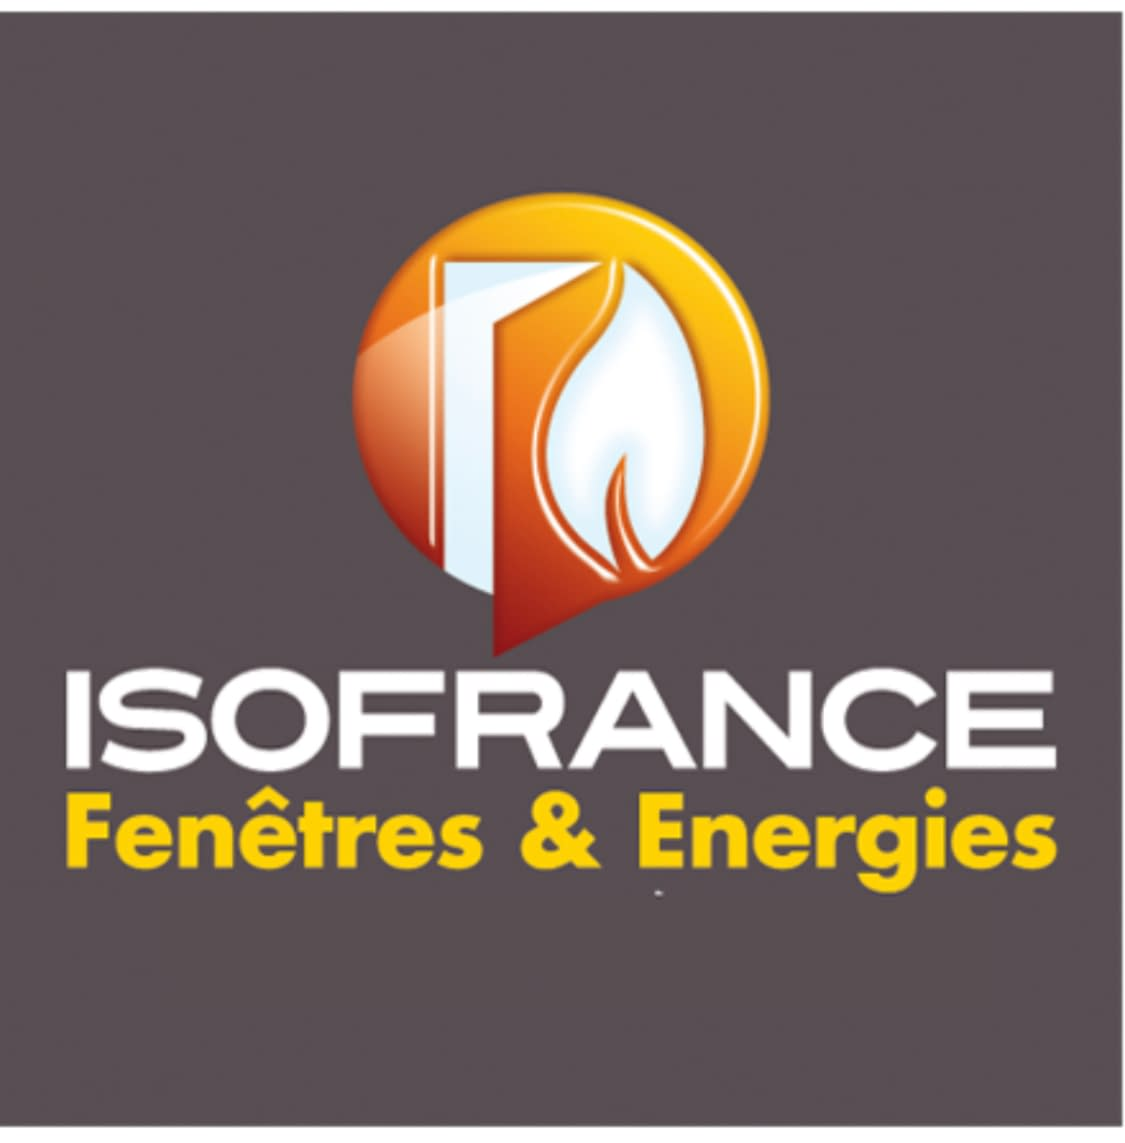 ISO france